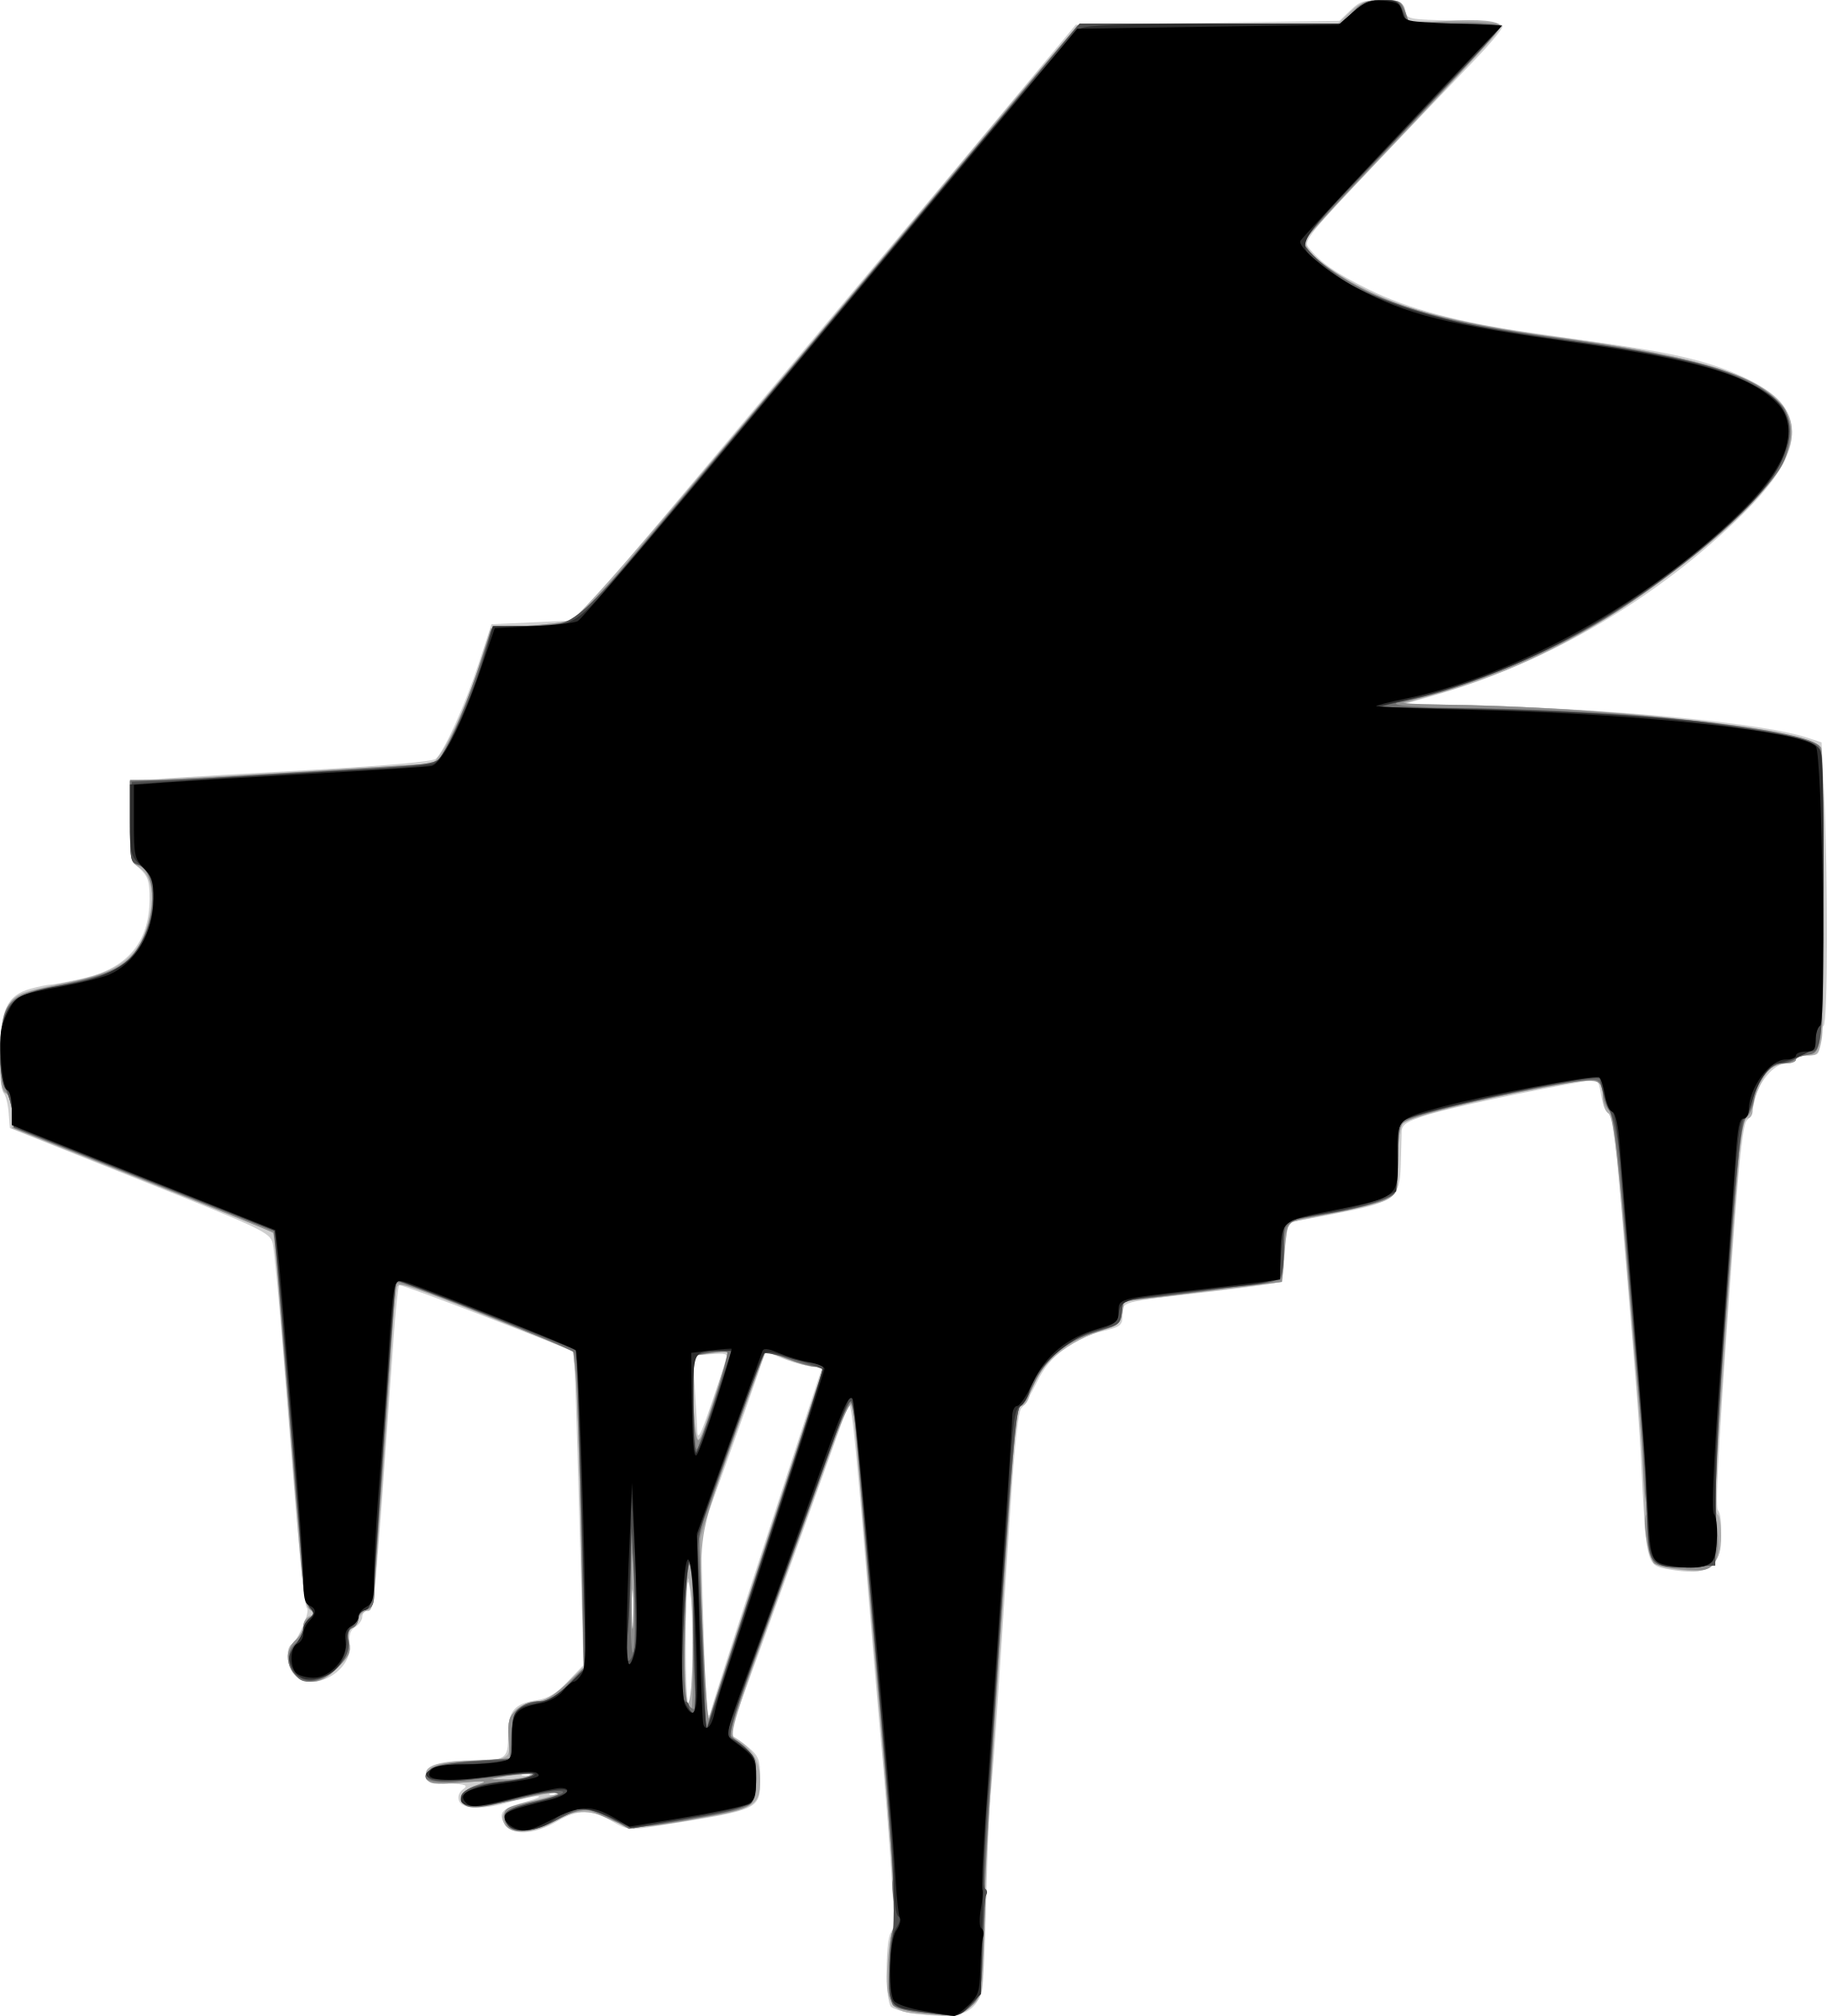 Pianist silhouette at getdrawings. Piano clipart tool